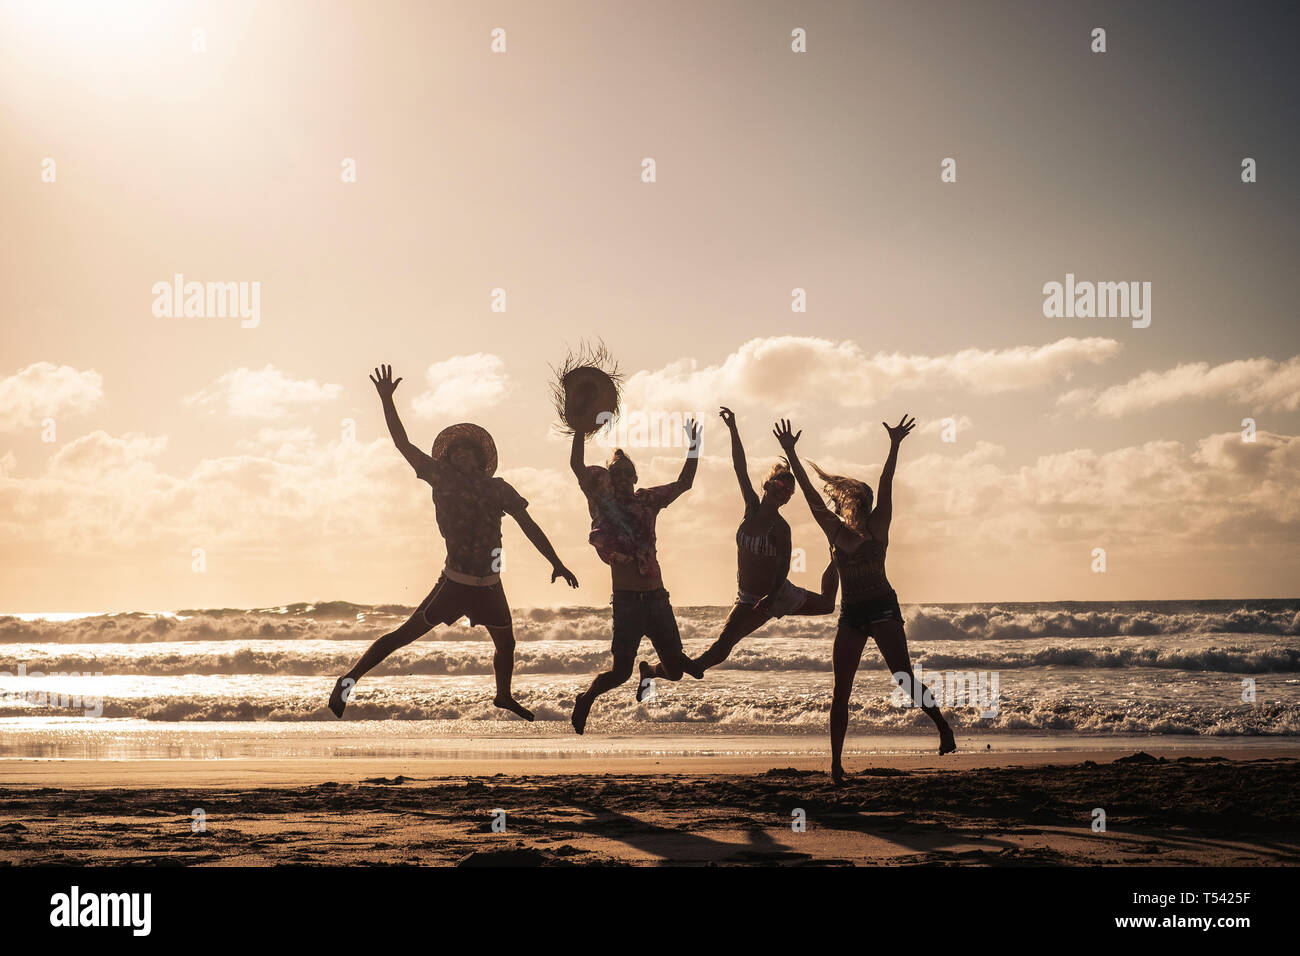 Group of people jump happy together at the beach during sunset with sky in background and silhouette bodies - summer vacation holiday for friends peop Stock Photo